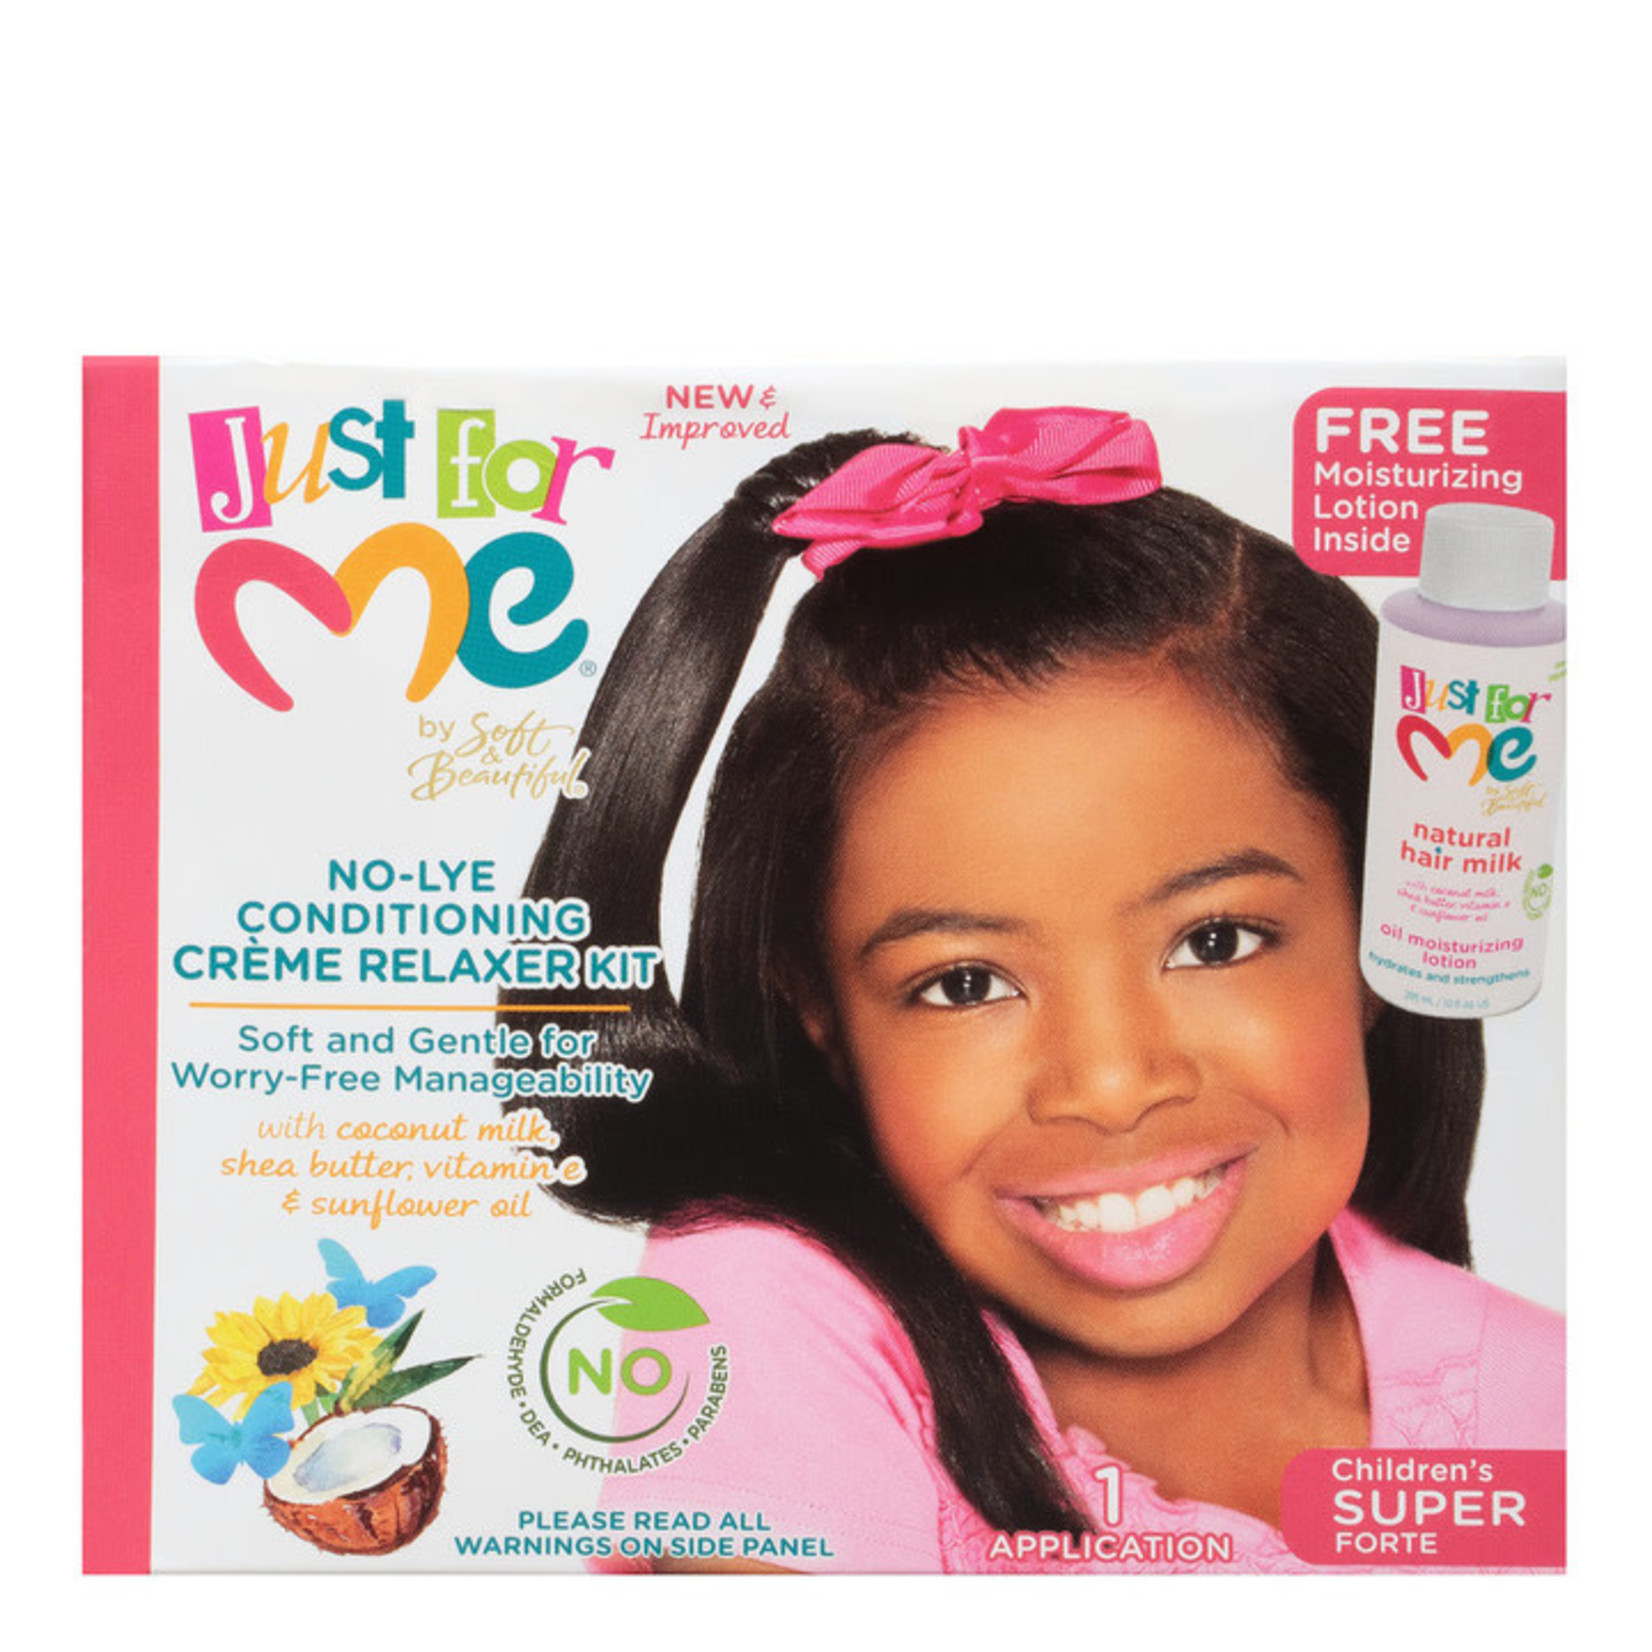 JUST FOR ME JUST FOR ME NO-LYE CONDITIONING CREME RELAXER KIT - SUPER